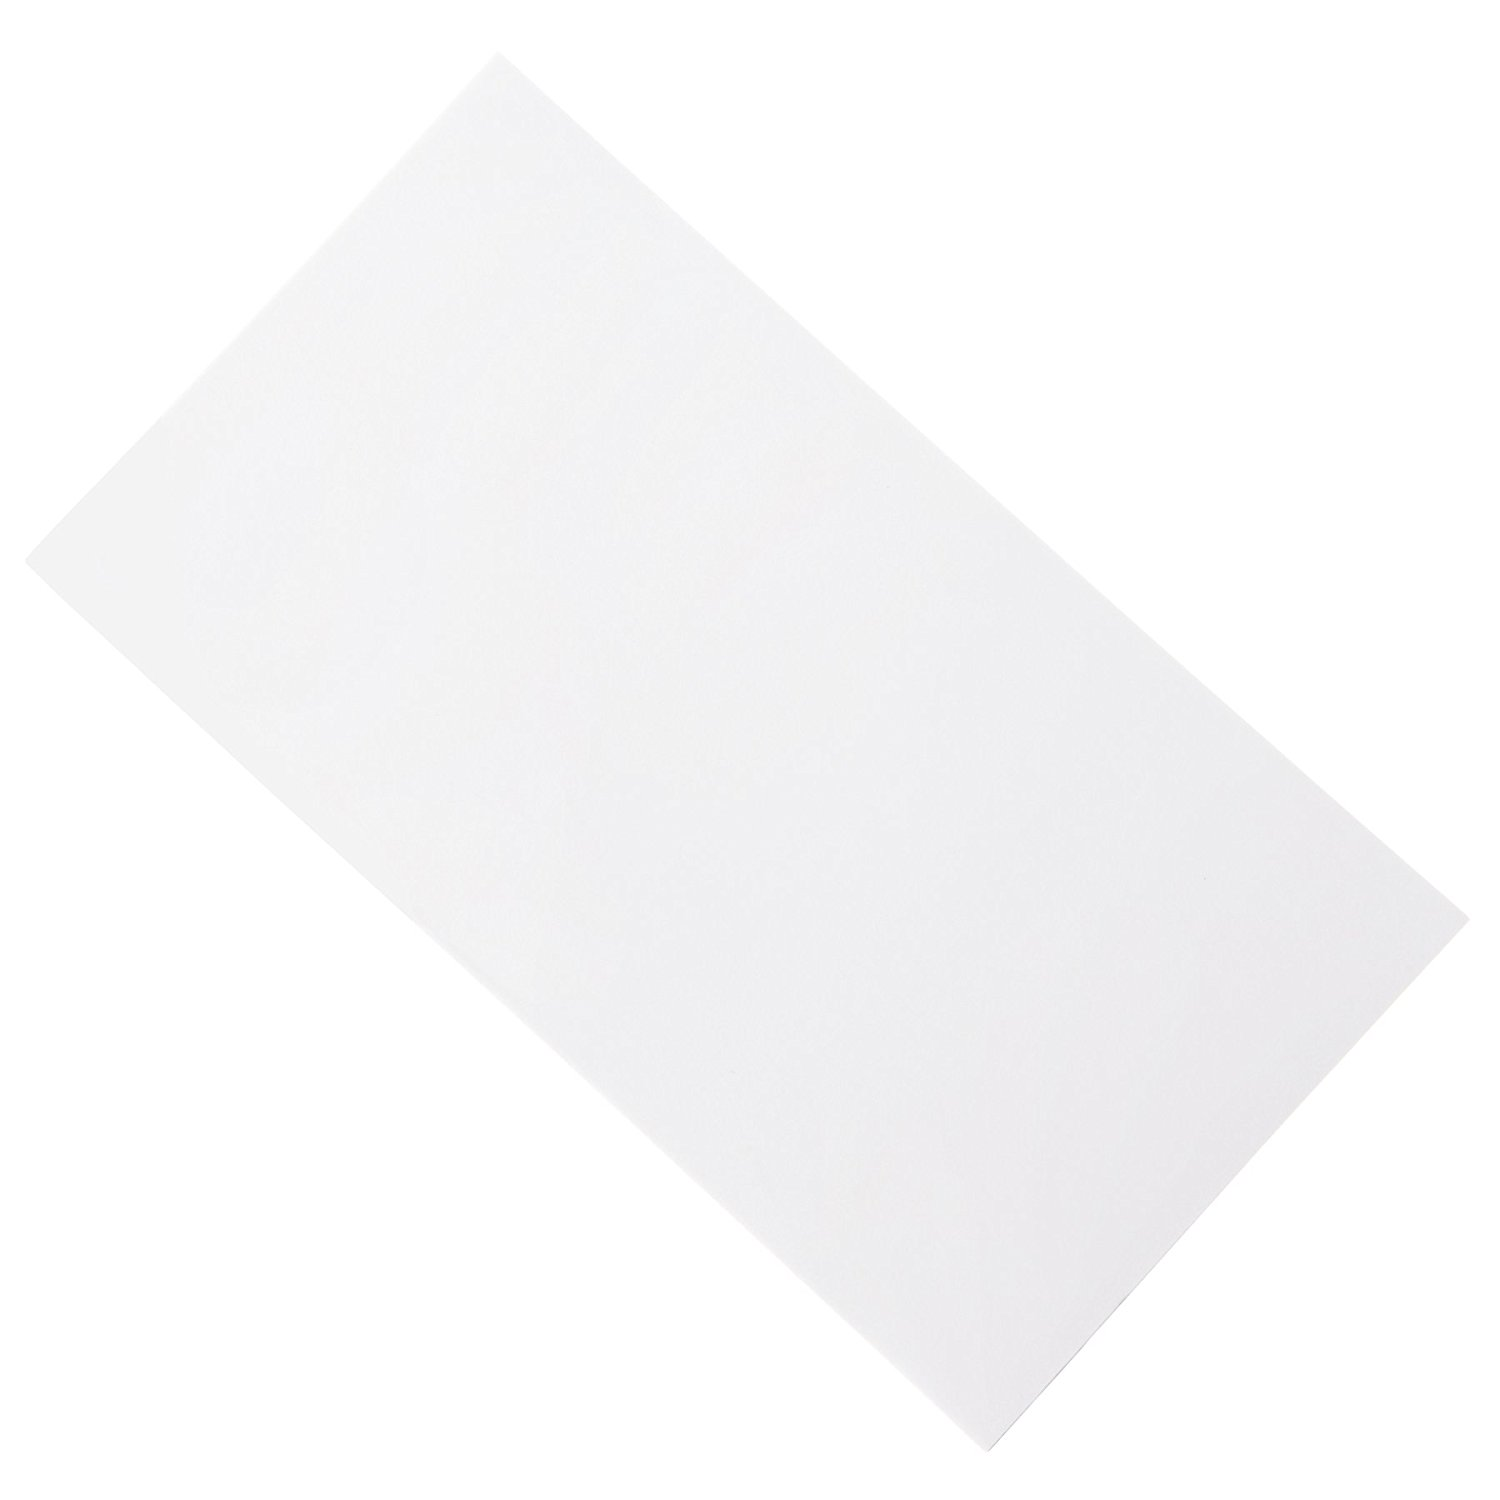 Aerobind QRH/Pilot Checklist Paper (Not Hole Punched) - Sized For 7 Hole Patterns - 6.12 Inch x 11 Inch, 20# / 75gsm